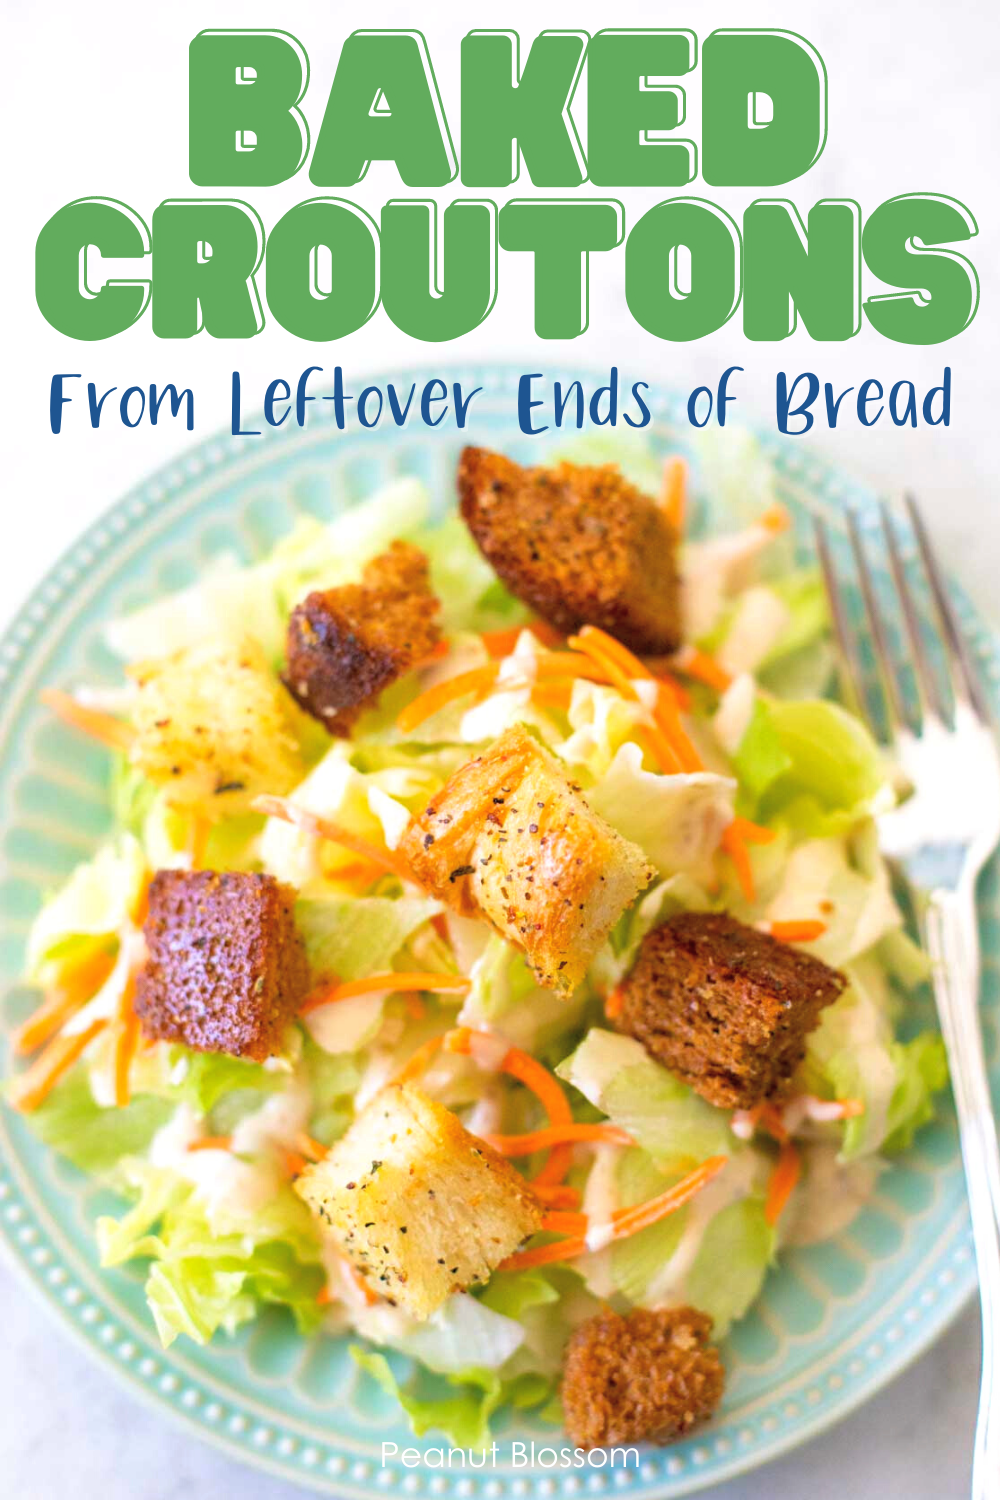 A green salad shows a mix of baked croutons sprinkled over the top.